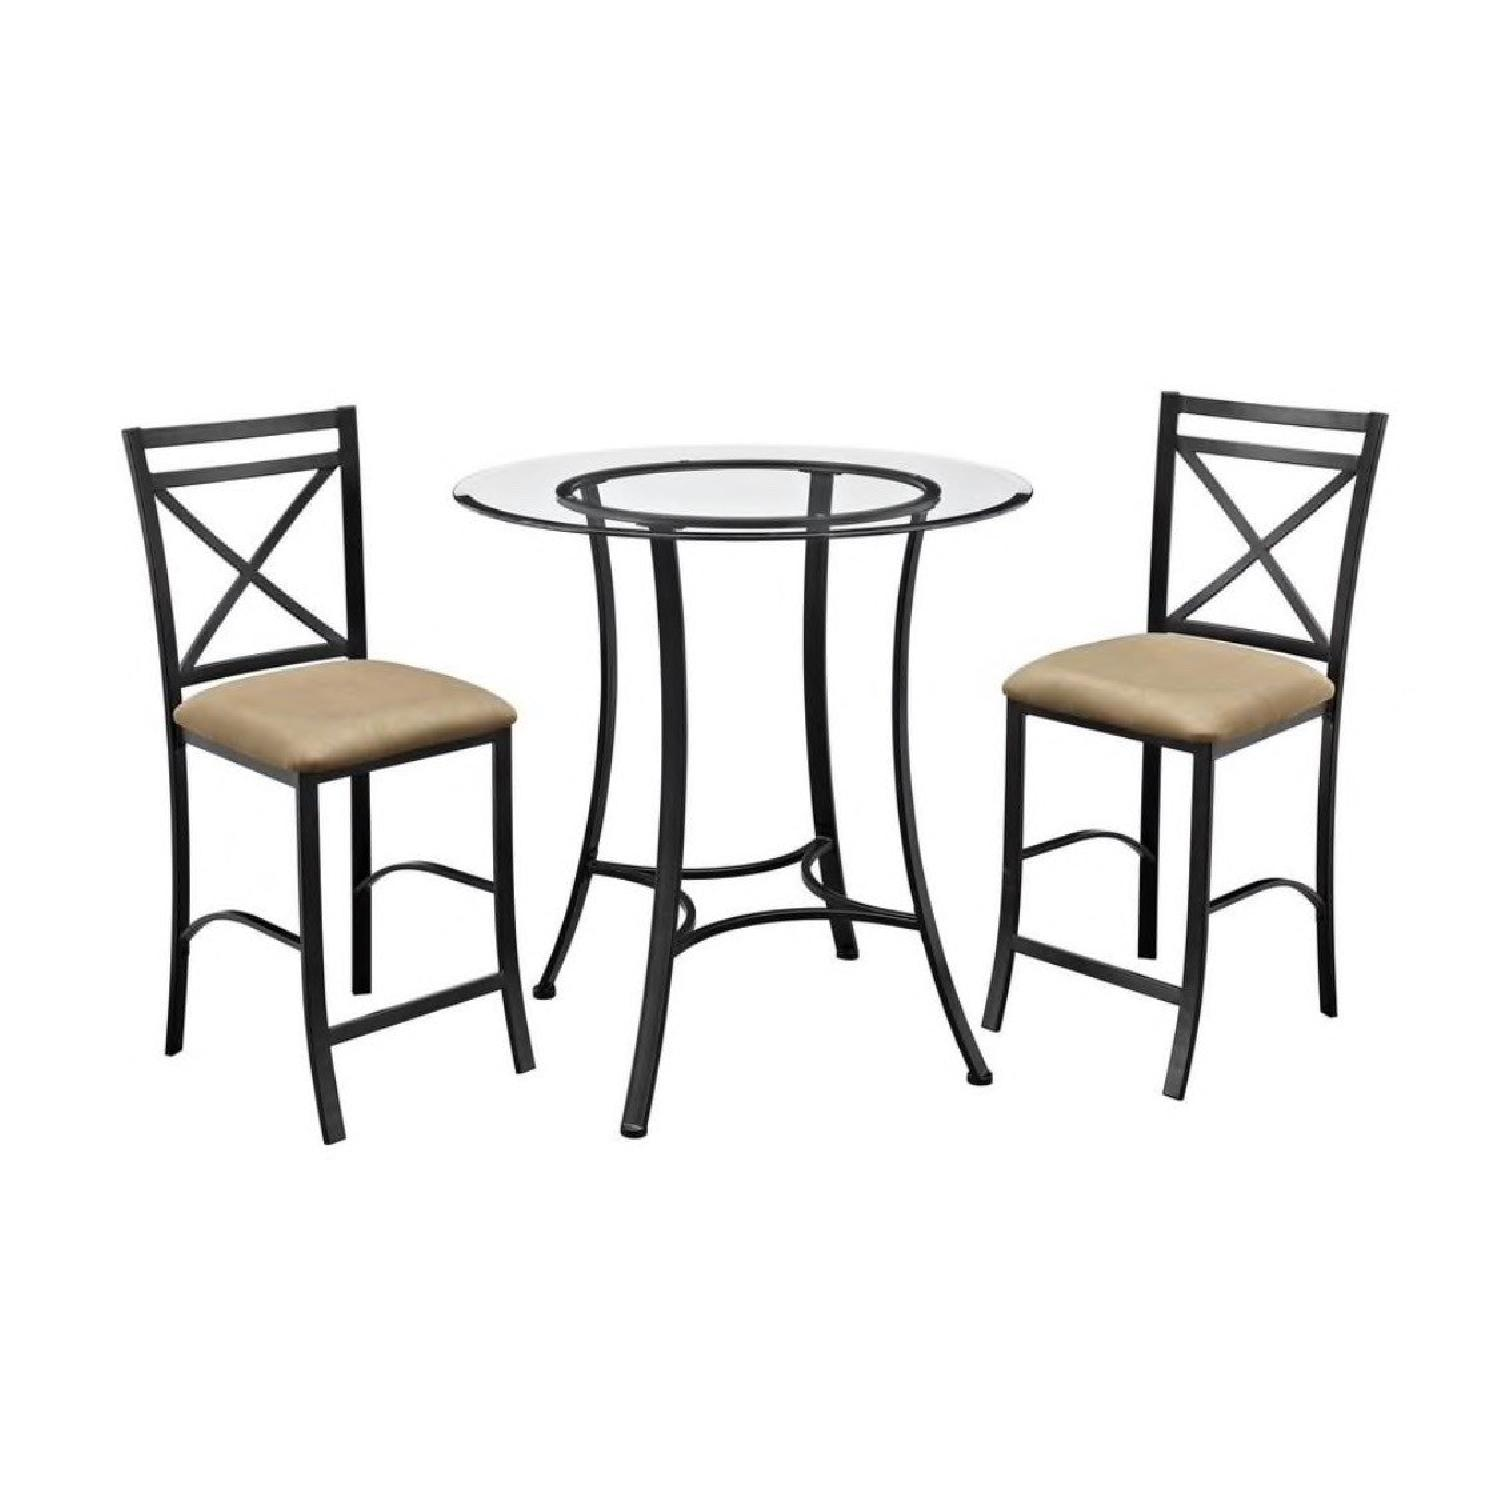 DHP Valerie 3-Piece Black & Beige Counter Height Dining Set - image-0